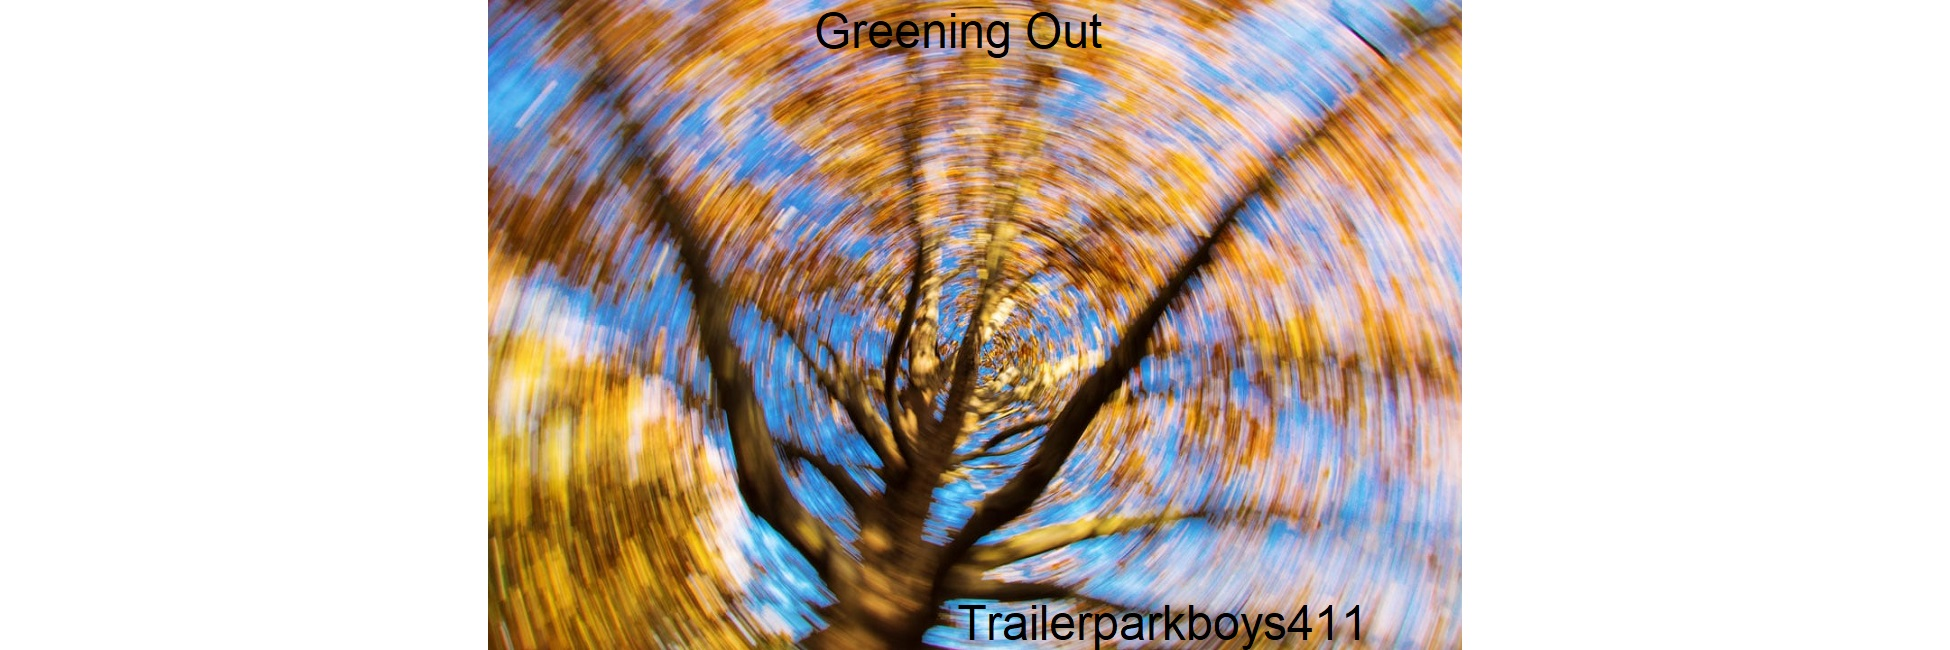 Greening Out